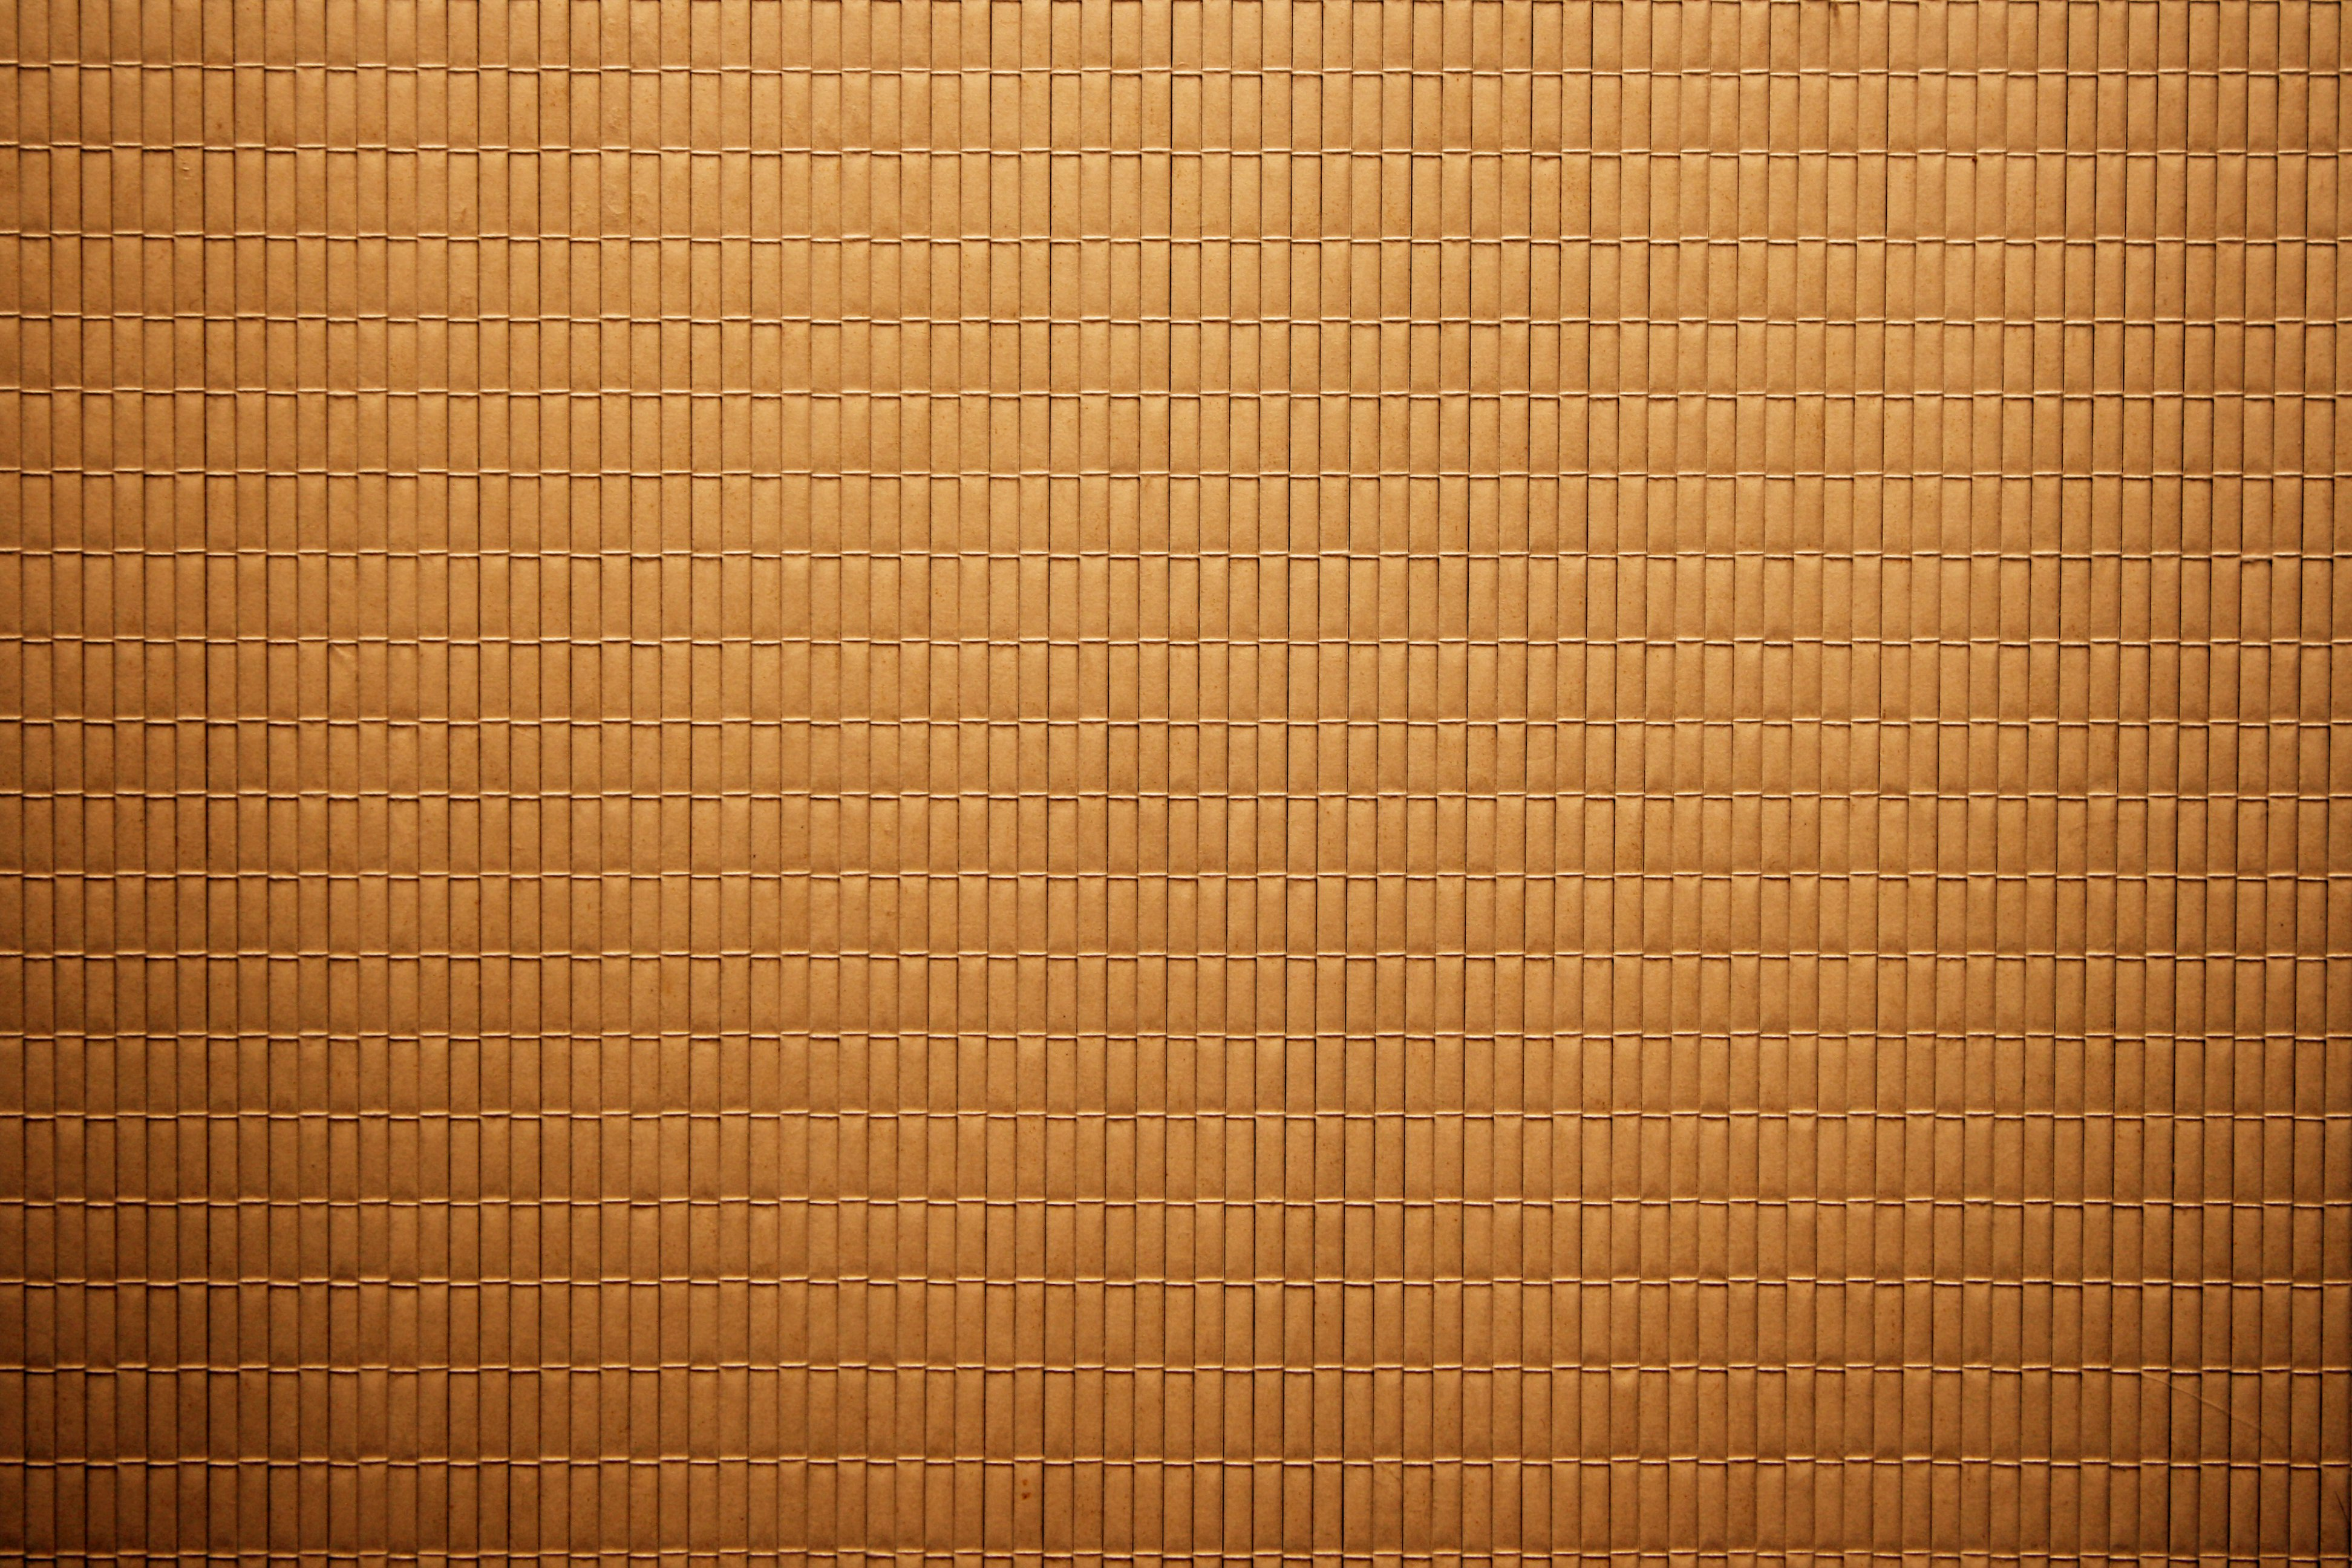 Bamboo Mat Clipart 20 Free Cliparts Download Images On